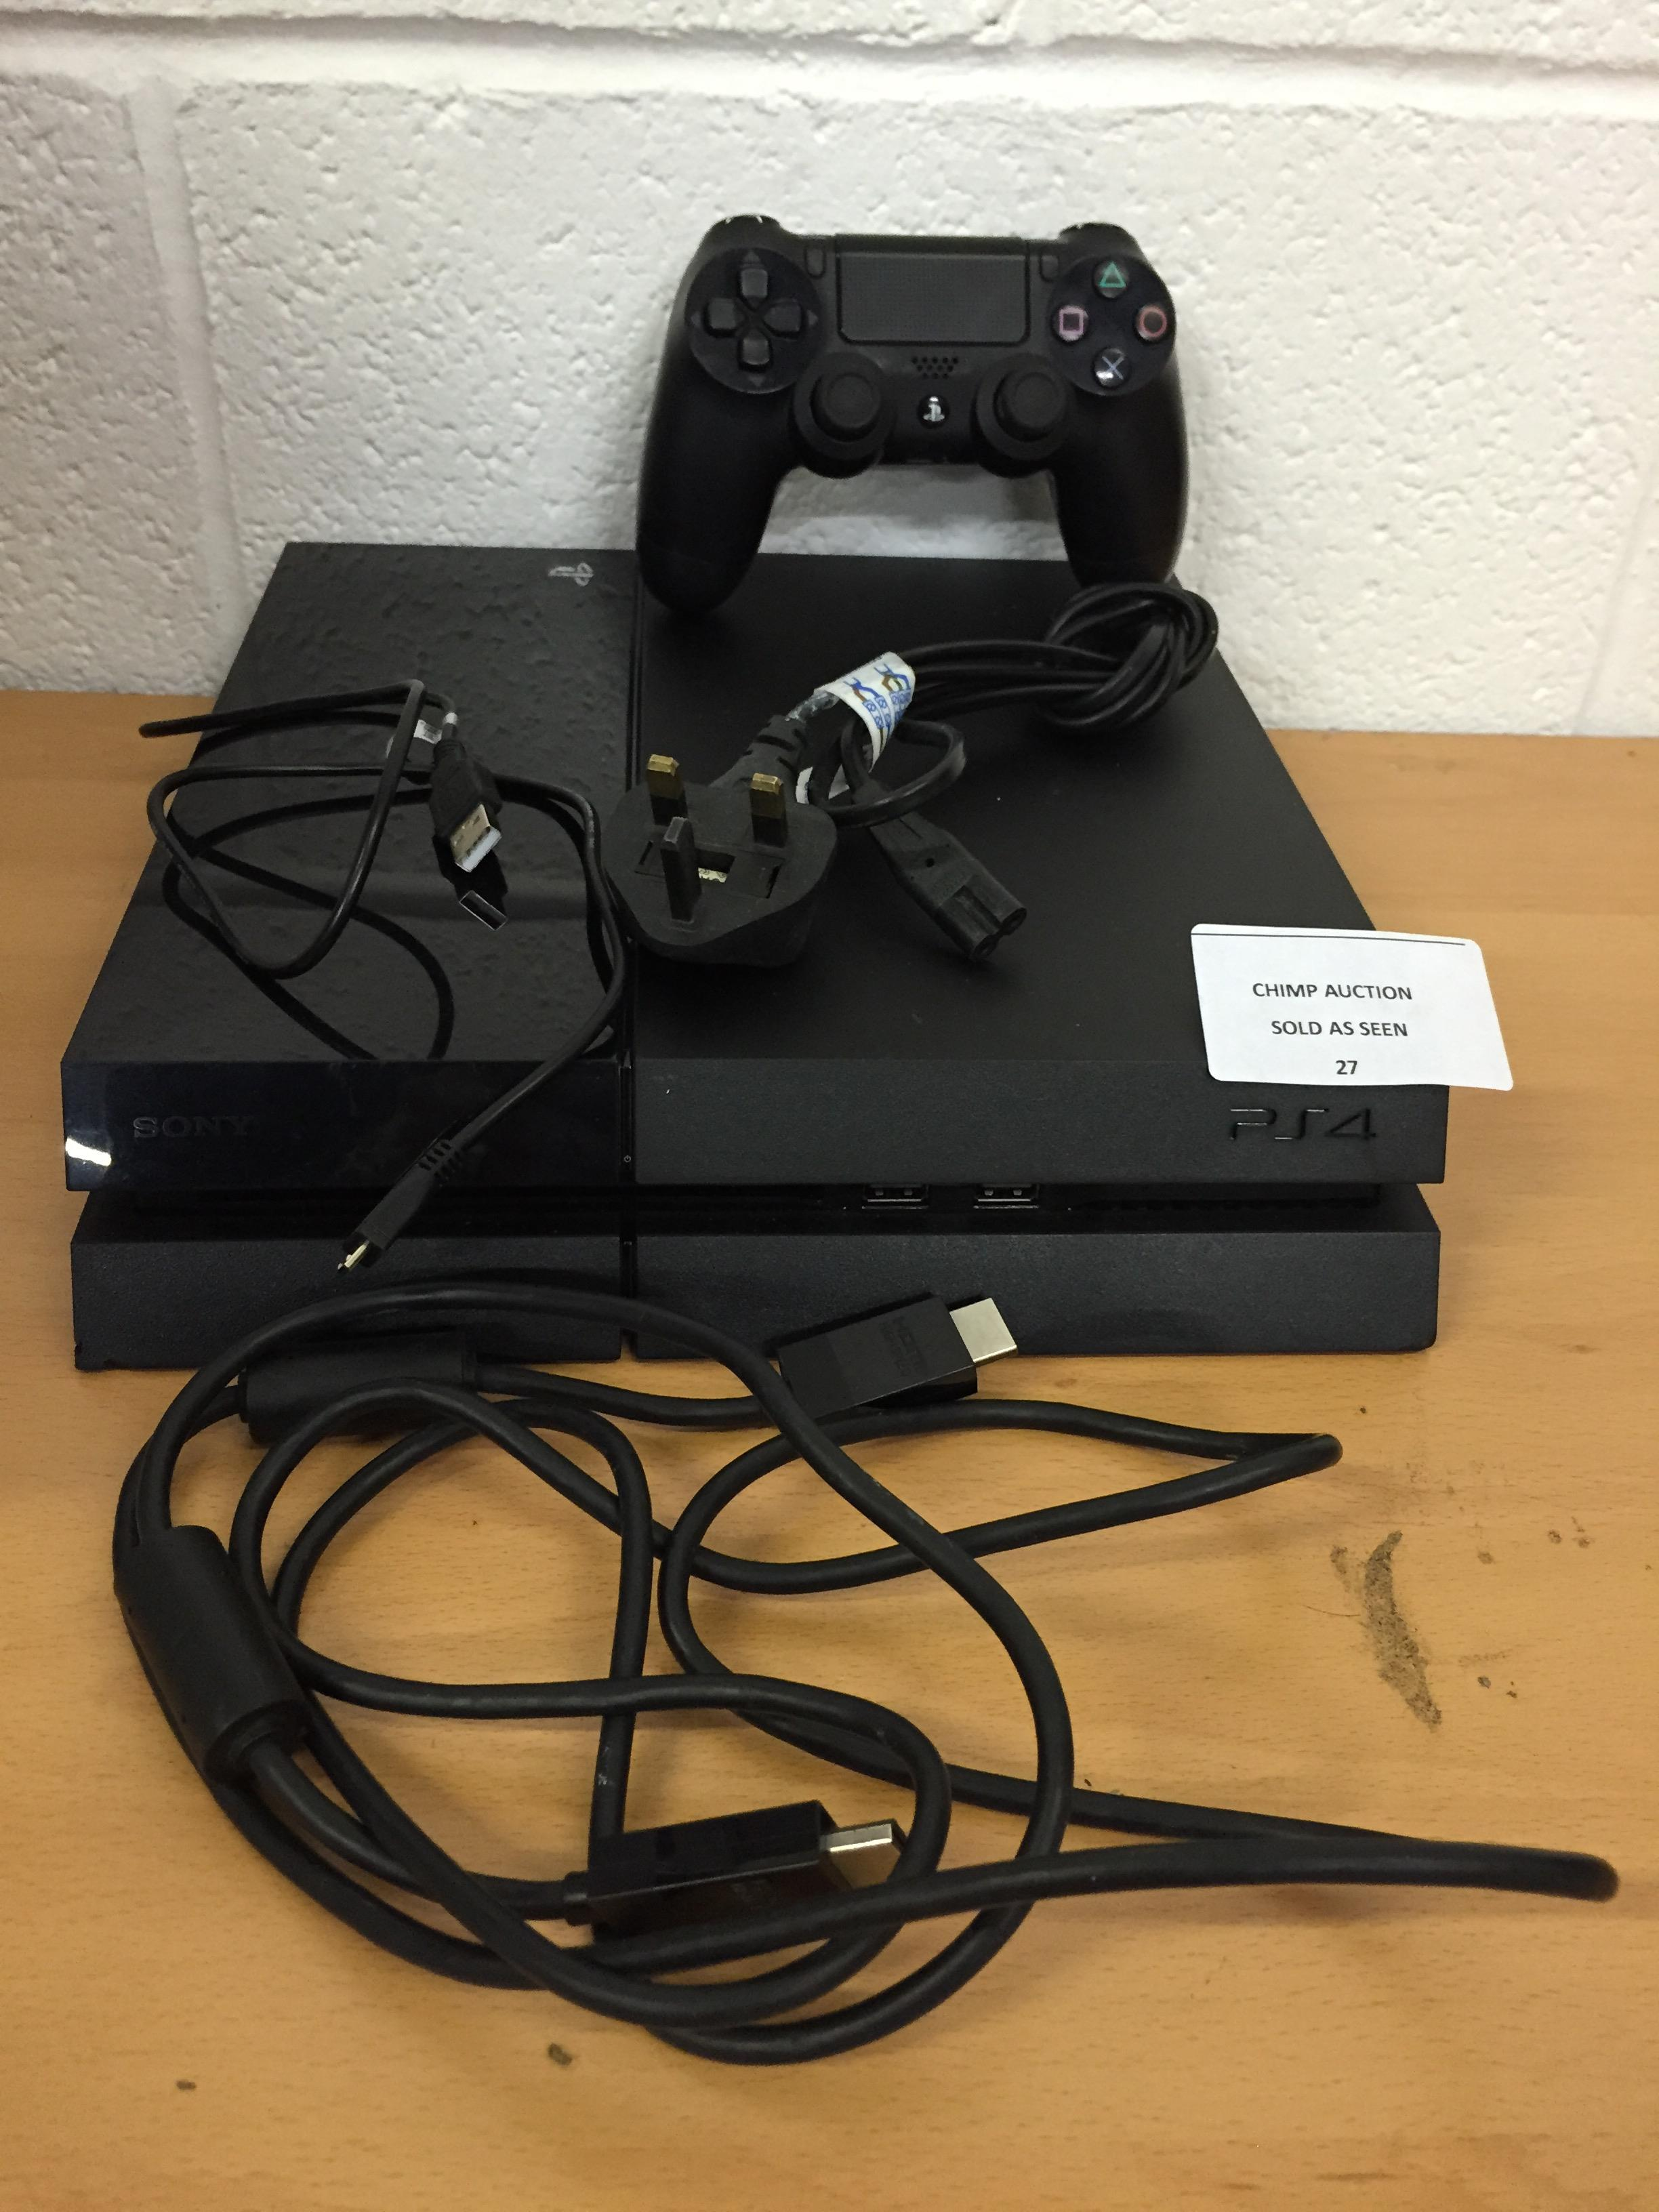 Lot 27 - Sony Playstation 4 PS4 console 500GB RRP £349.99